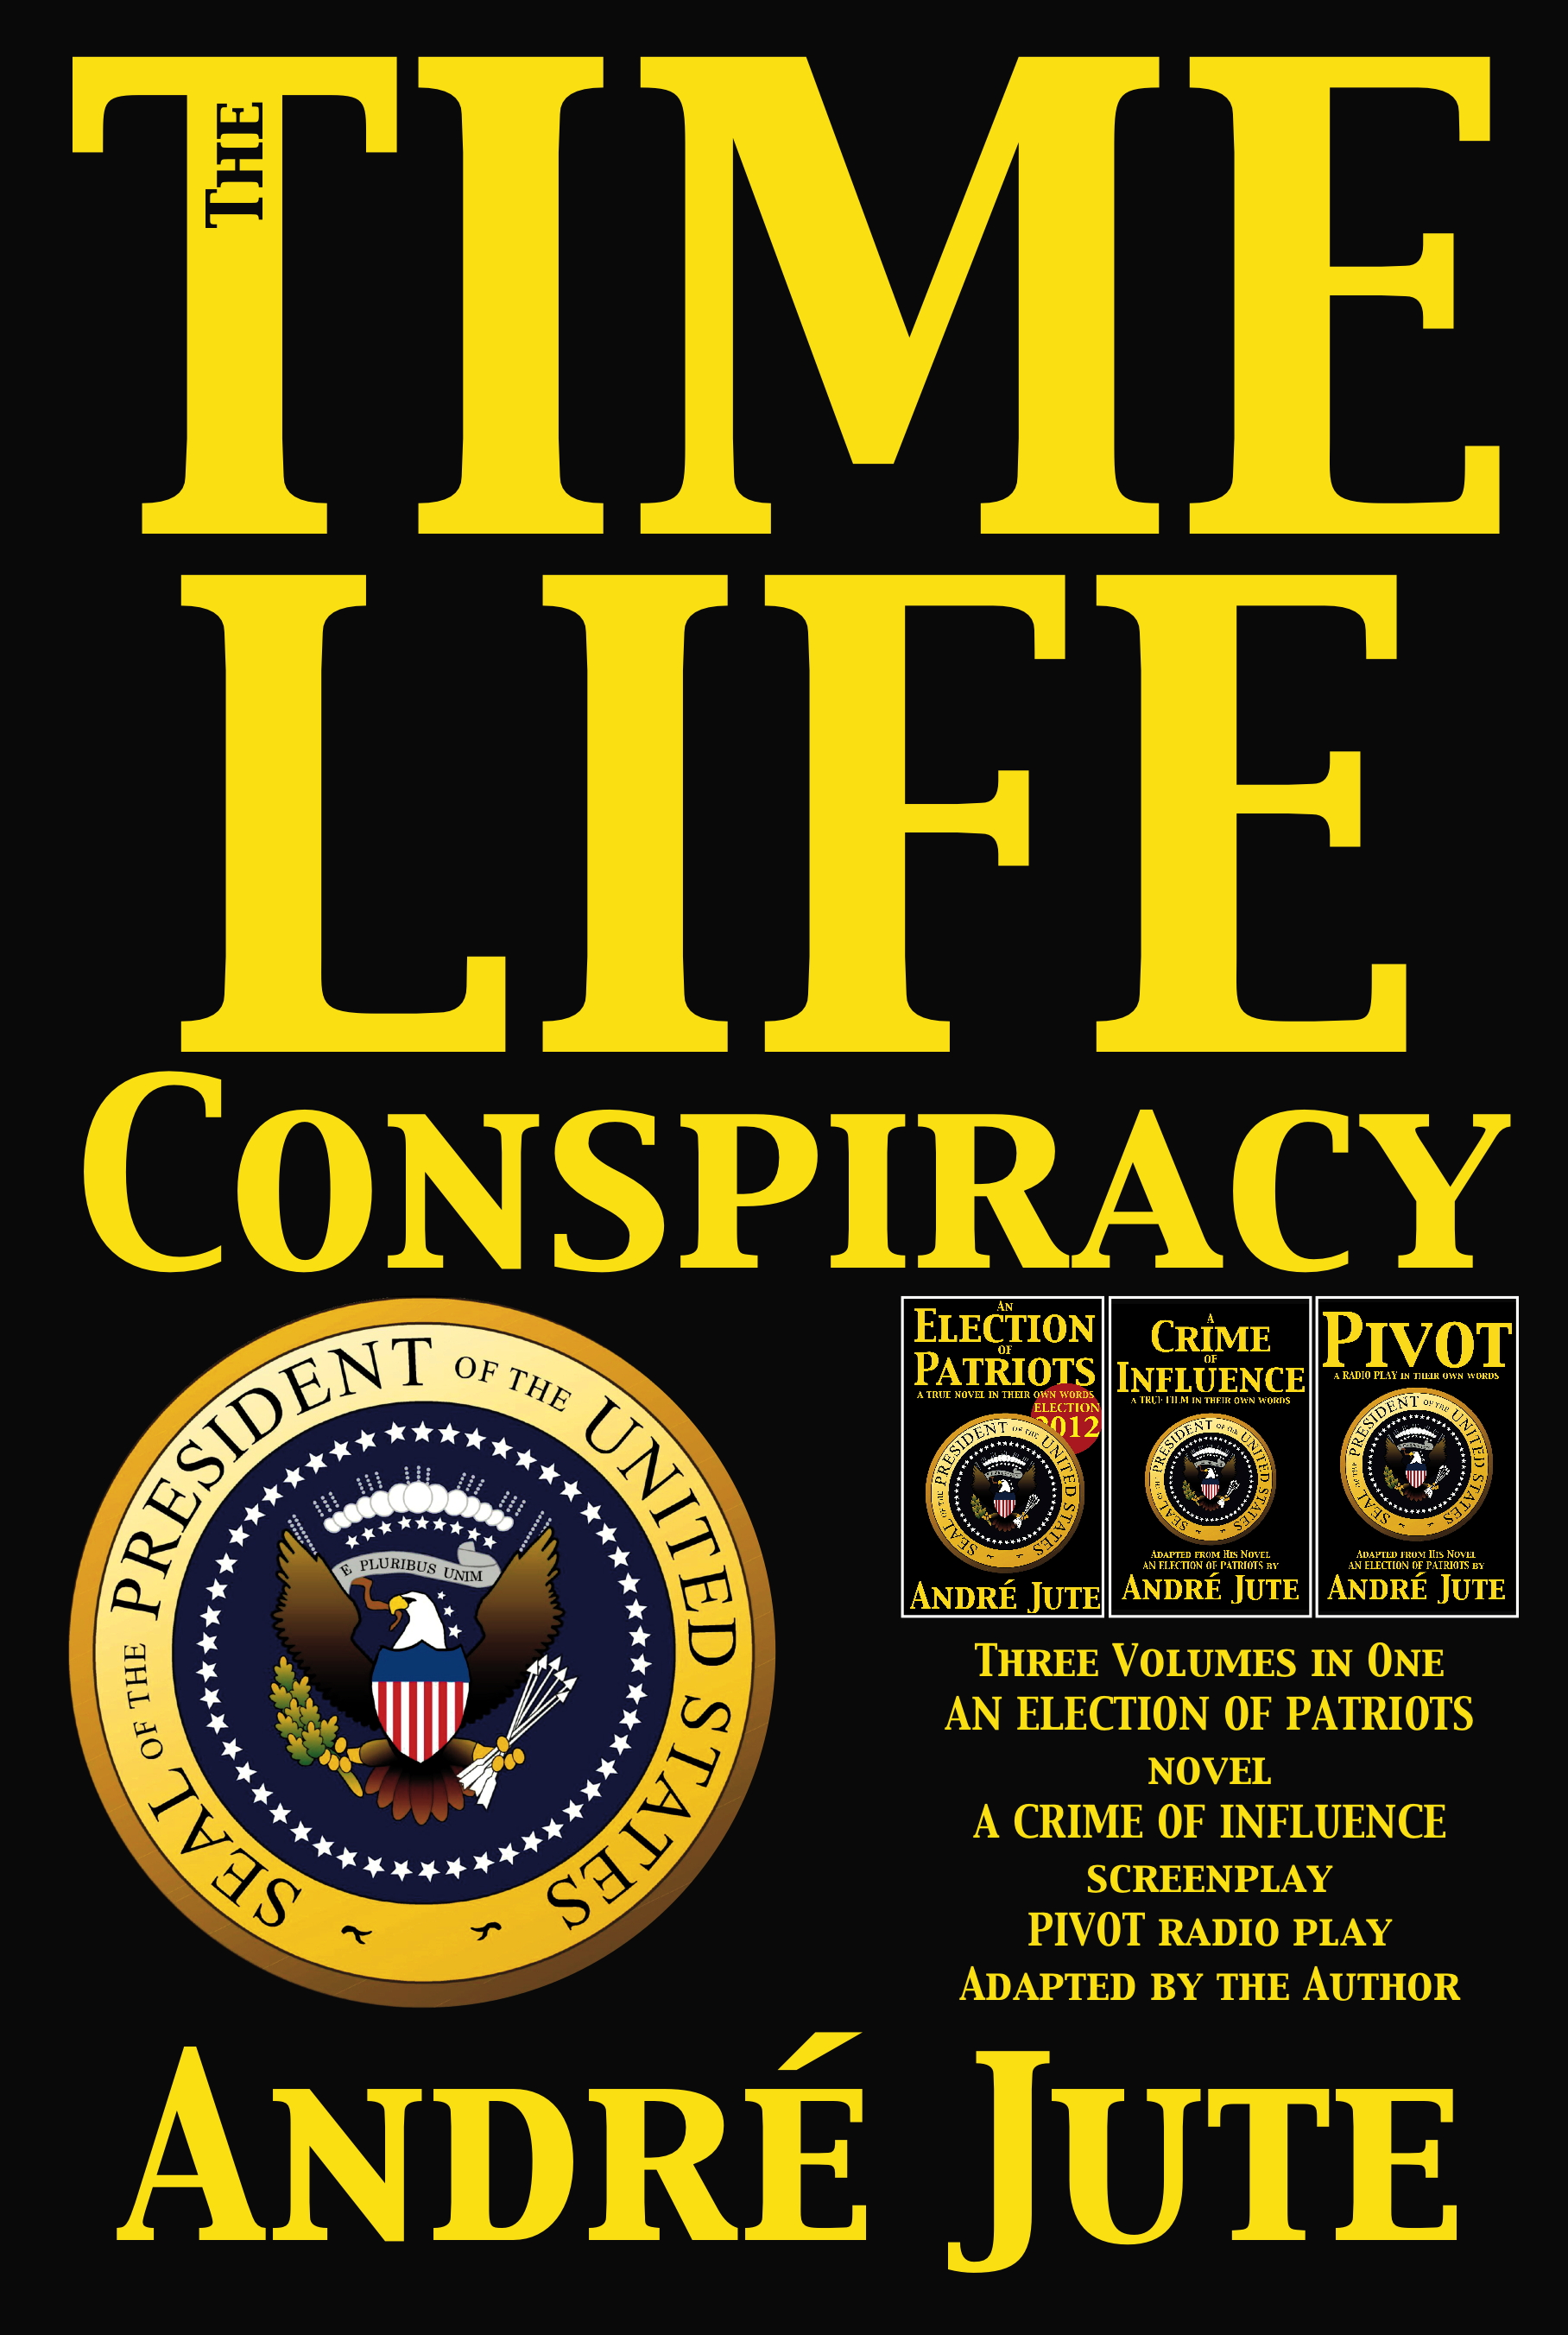 THE TIME-LIFE CONSPIRACY omnibus of novel, screenplay, radio script